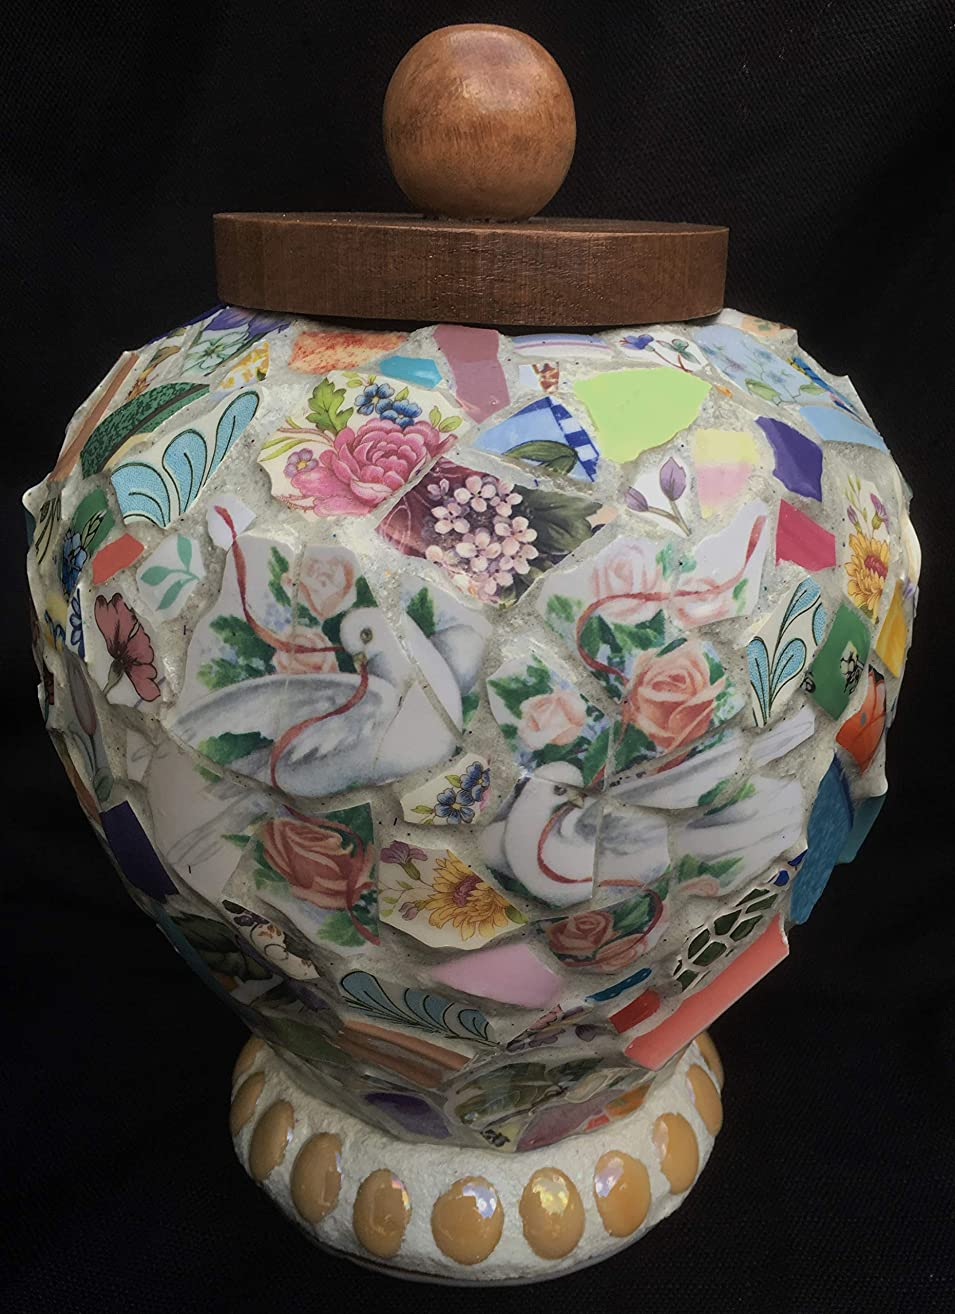 Dove Cremation Memorial Urn Mosaic Vase